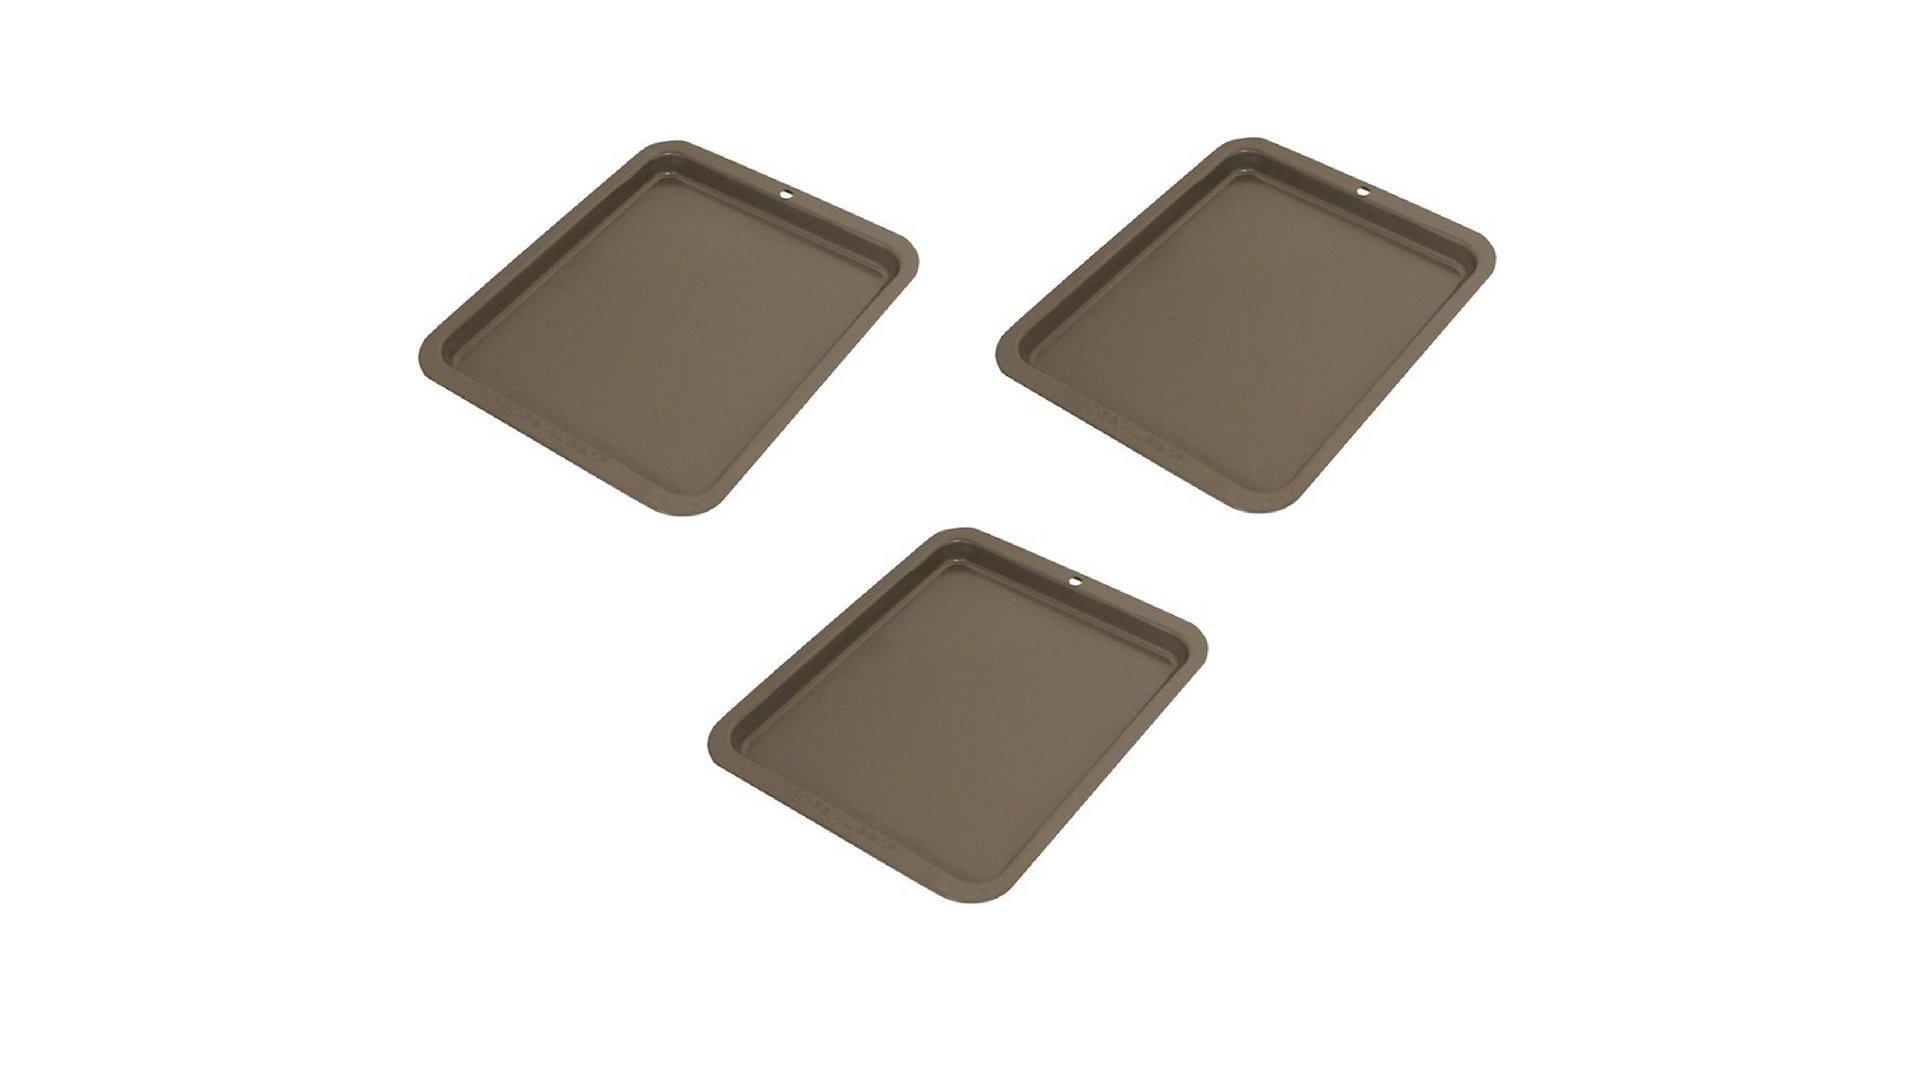 Range Kleen Non-Stick Toaster Oven Cookie Sheet,(3-Pieces of 8'' x 10'')